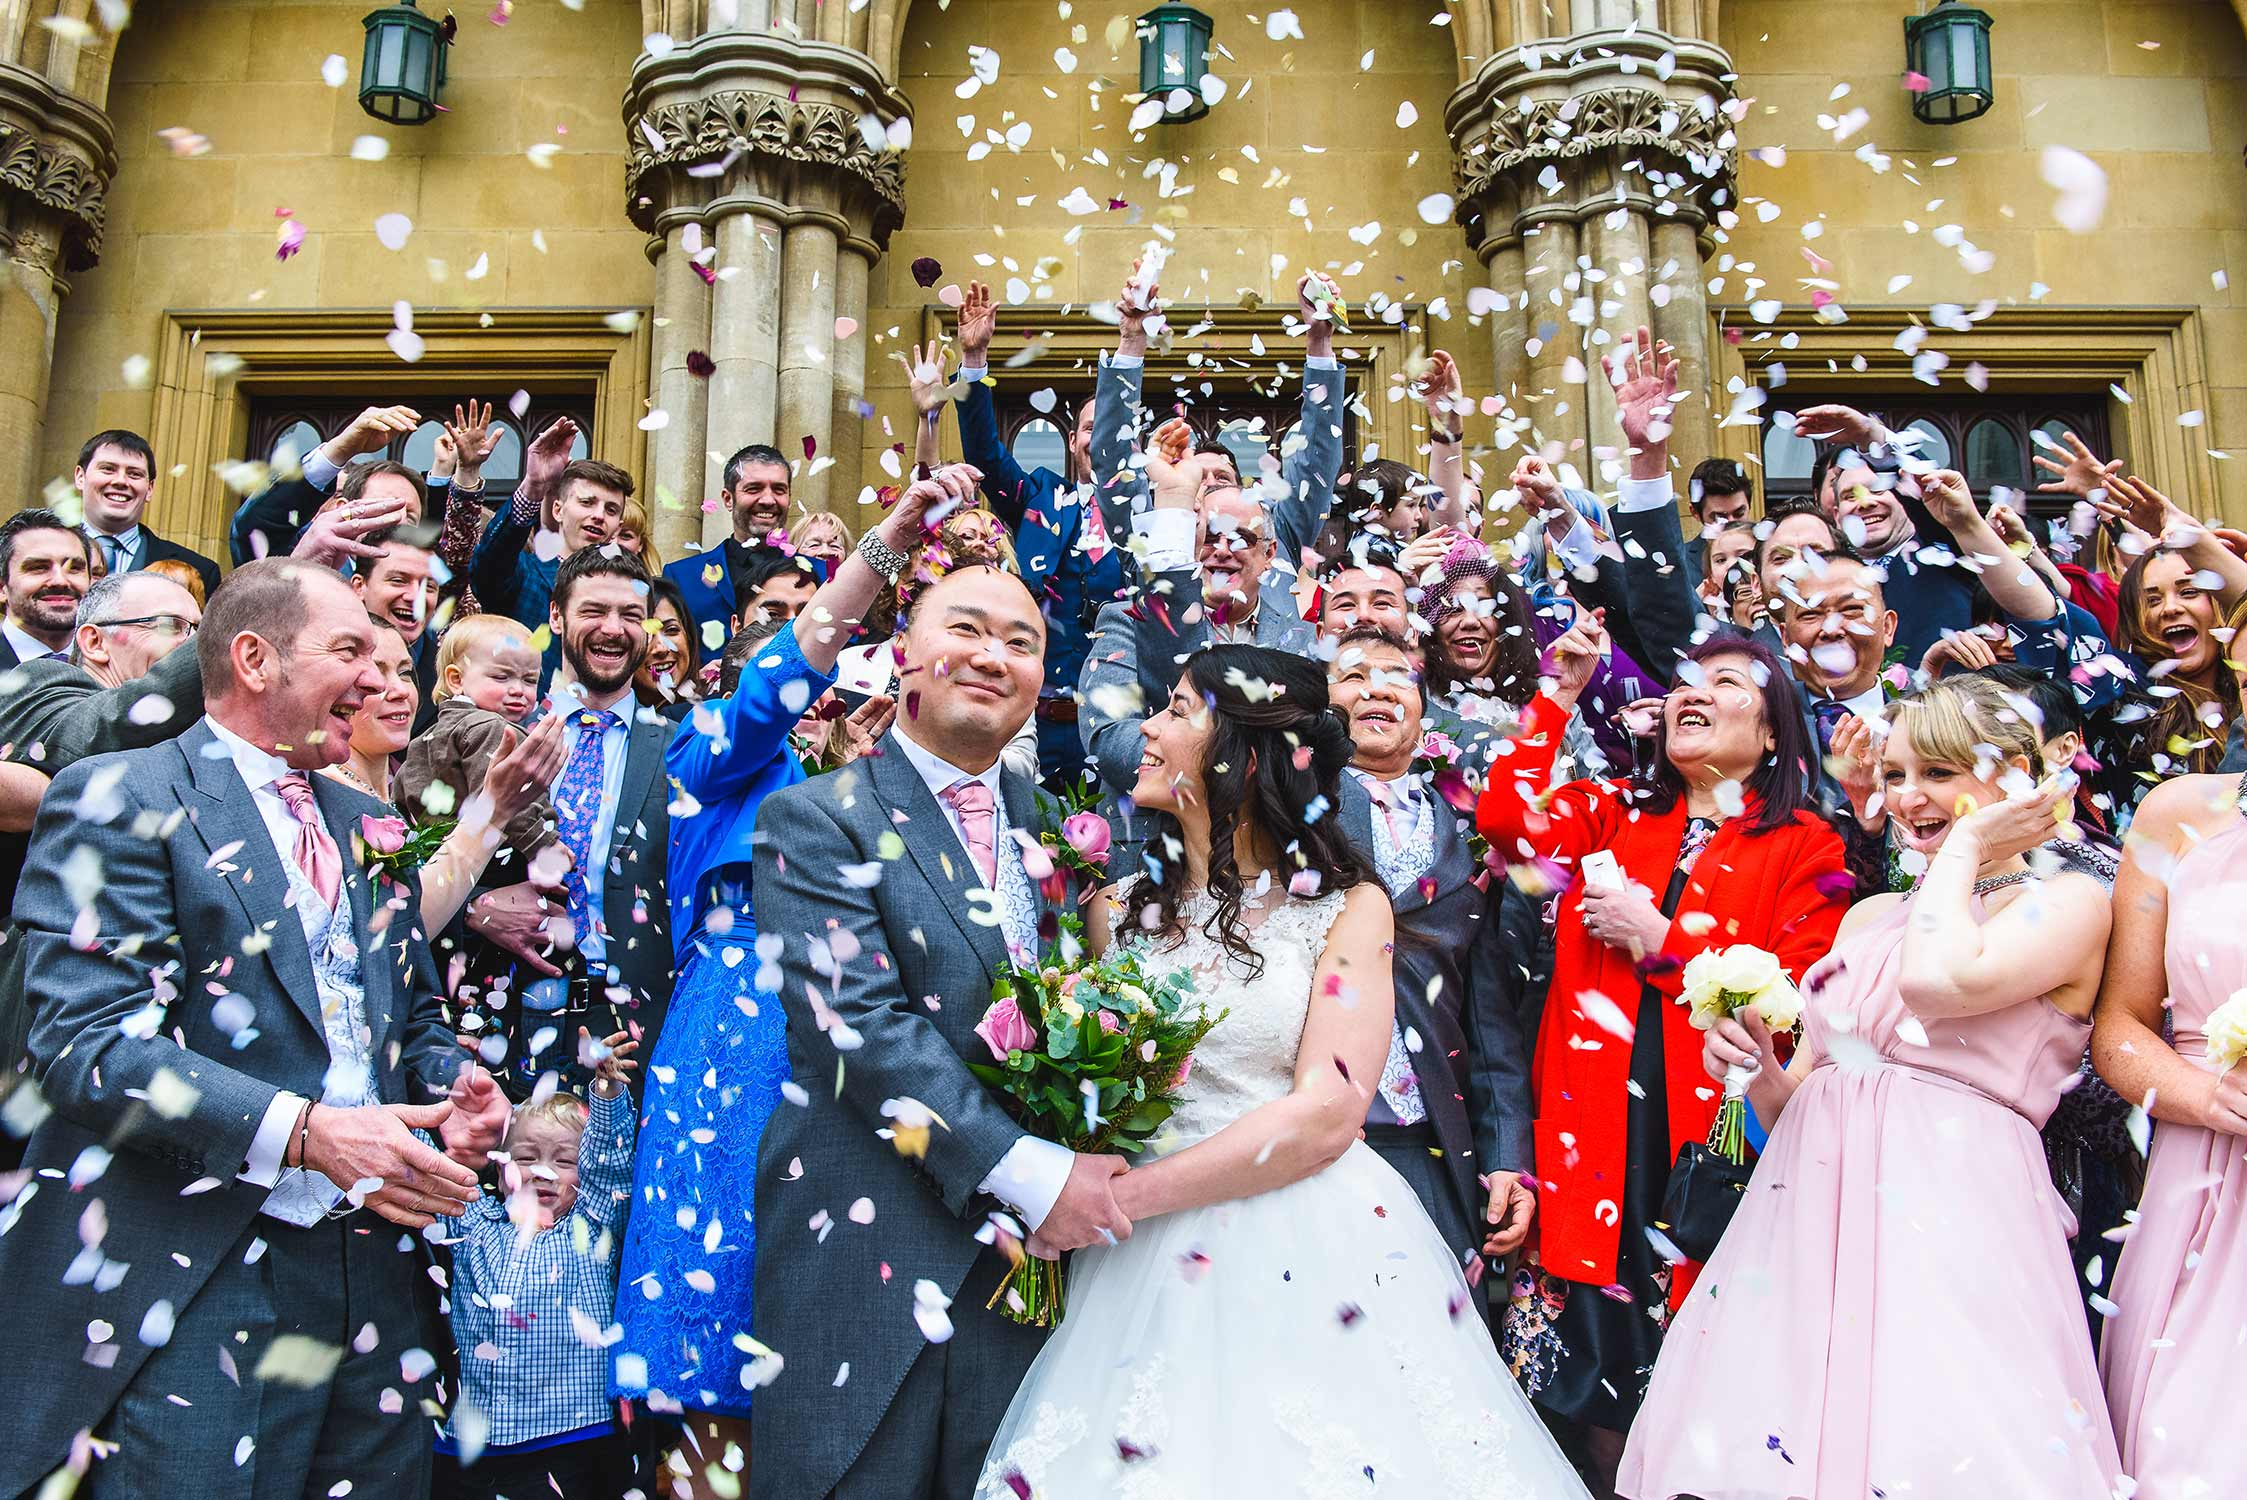 Wedding confetti covering bride & groom in Nottingham